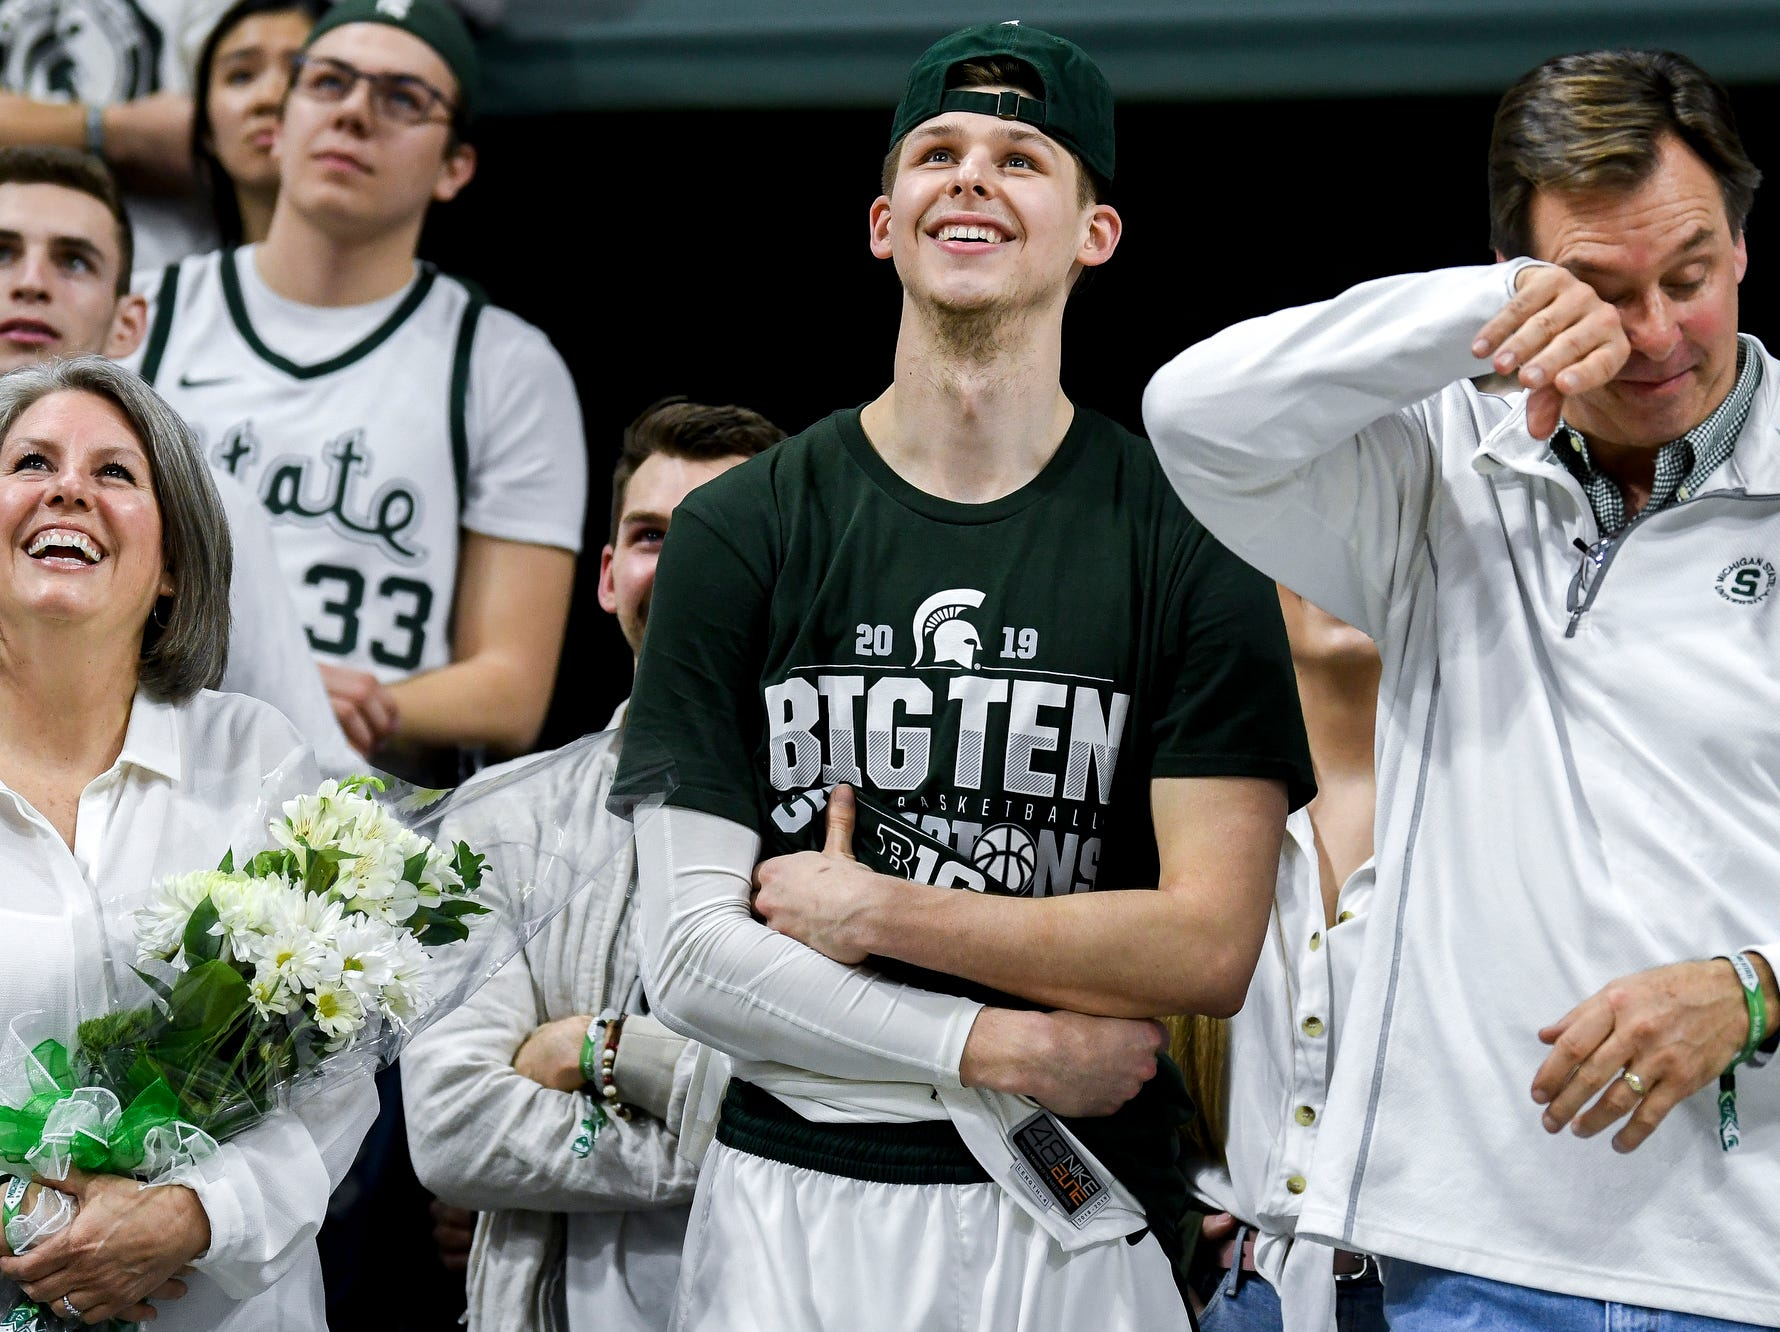 Michigan State senior Matt McQuaid, center, and his family watch a video tribute during senior night after the Spartans beat Michigan 75-63 on Saturday, March 9, 2019, at the Breslin Center in East Lansing.